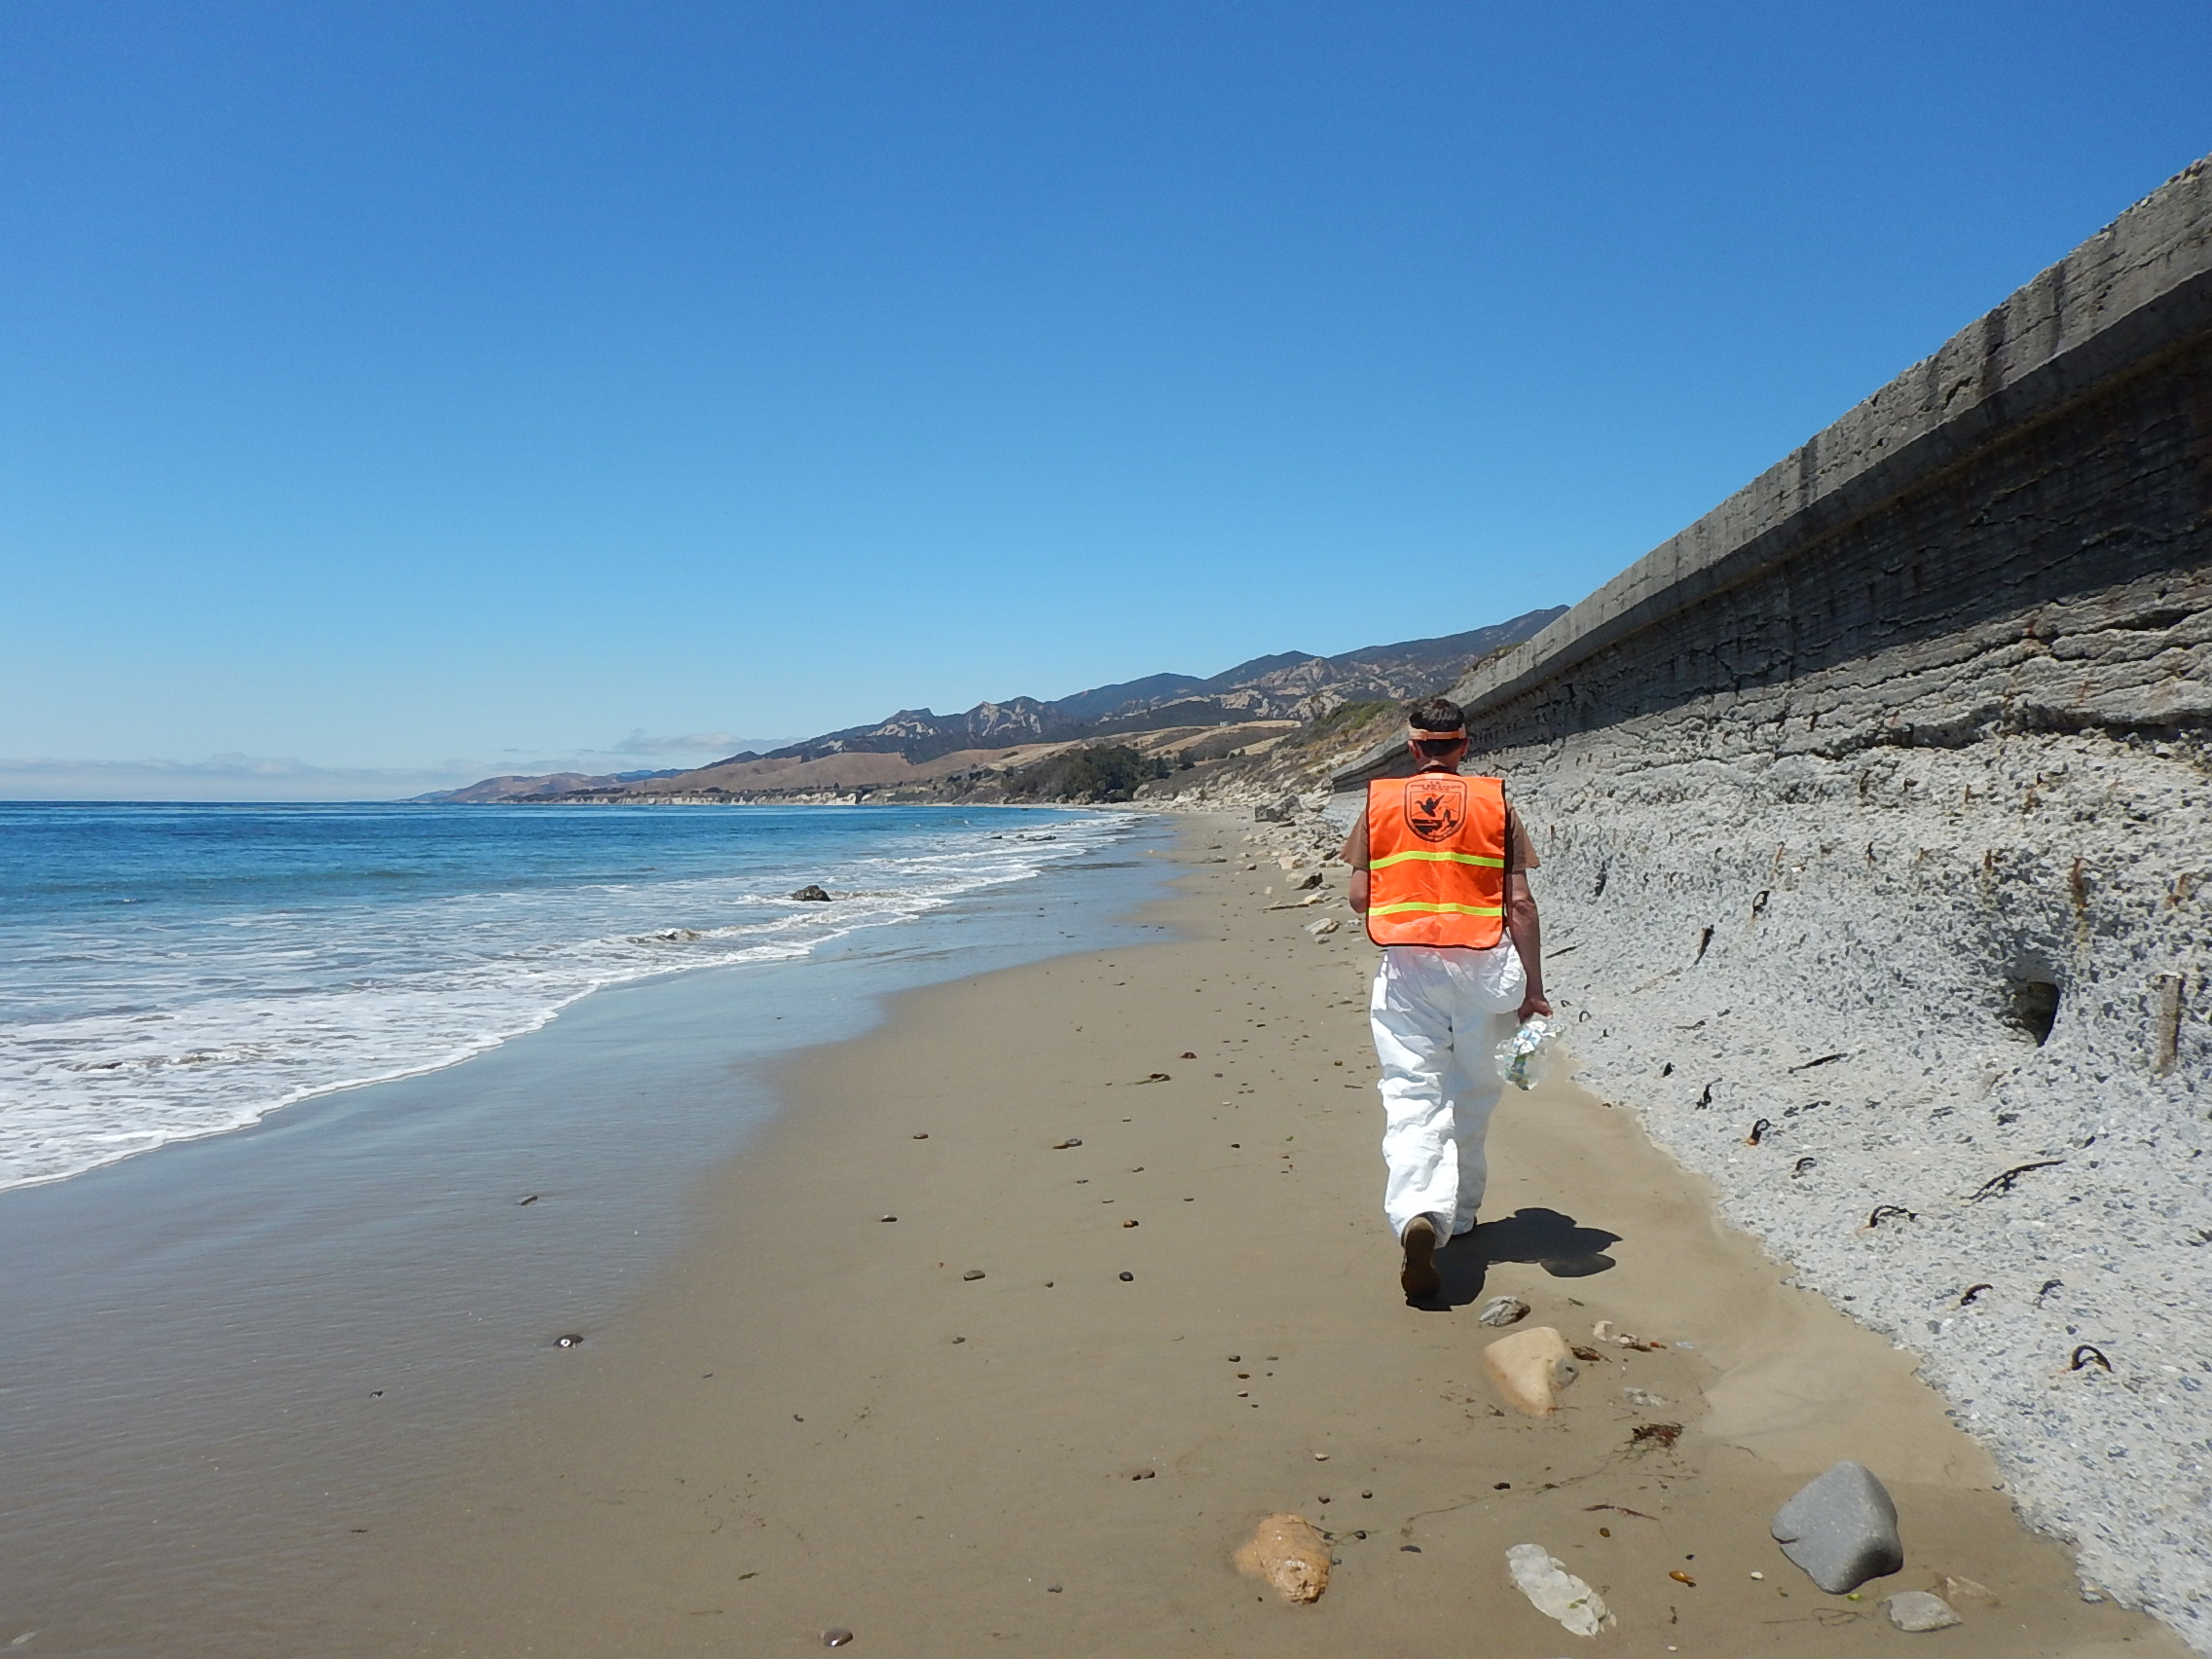 U.S. Fish and Wildlife Service biologist conducts observations along the beach to assess natural resource damages related to the Refugio oil spill.